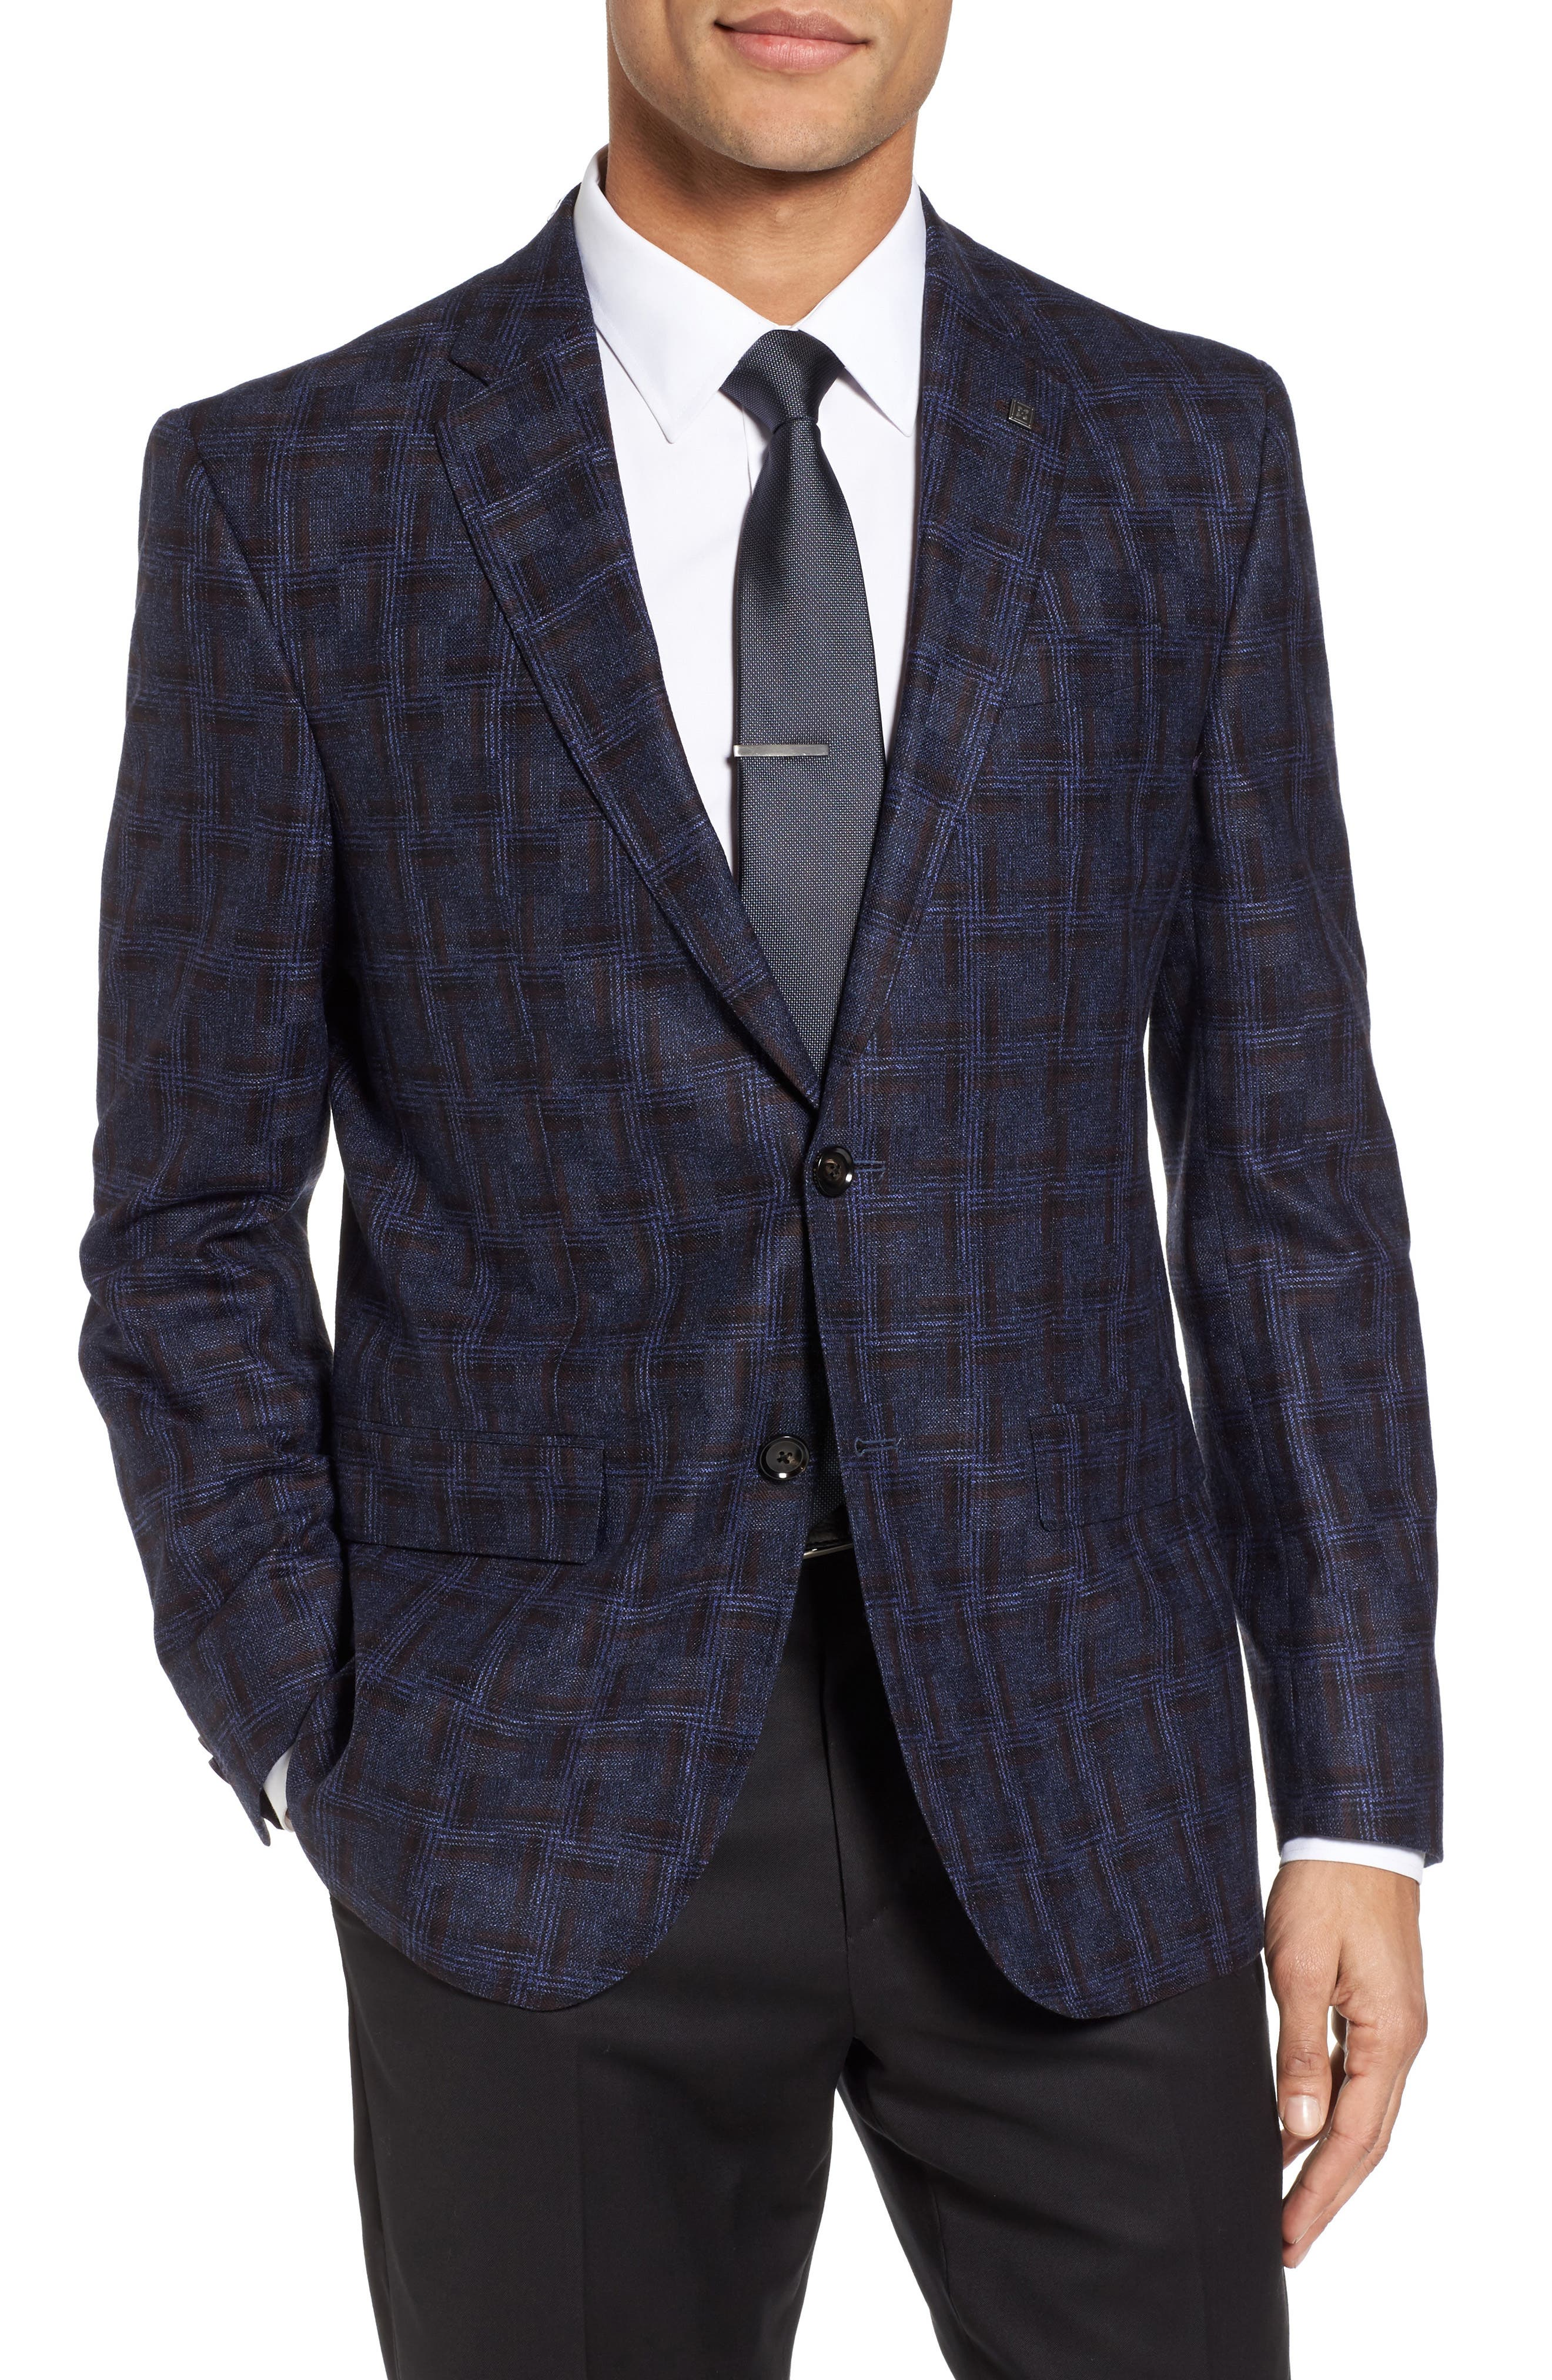 Alternate Image 1 Selected - Ted Baker London Jay Trim Fit Plaid Wool Sport Coat